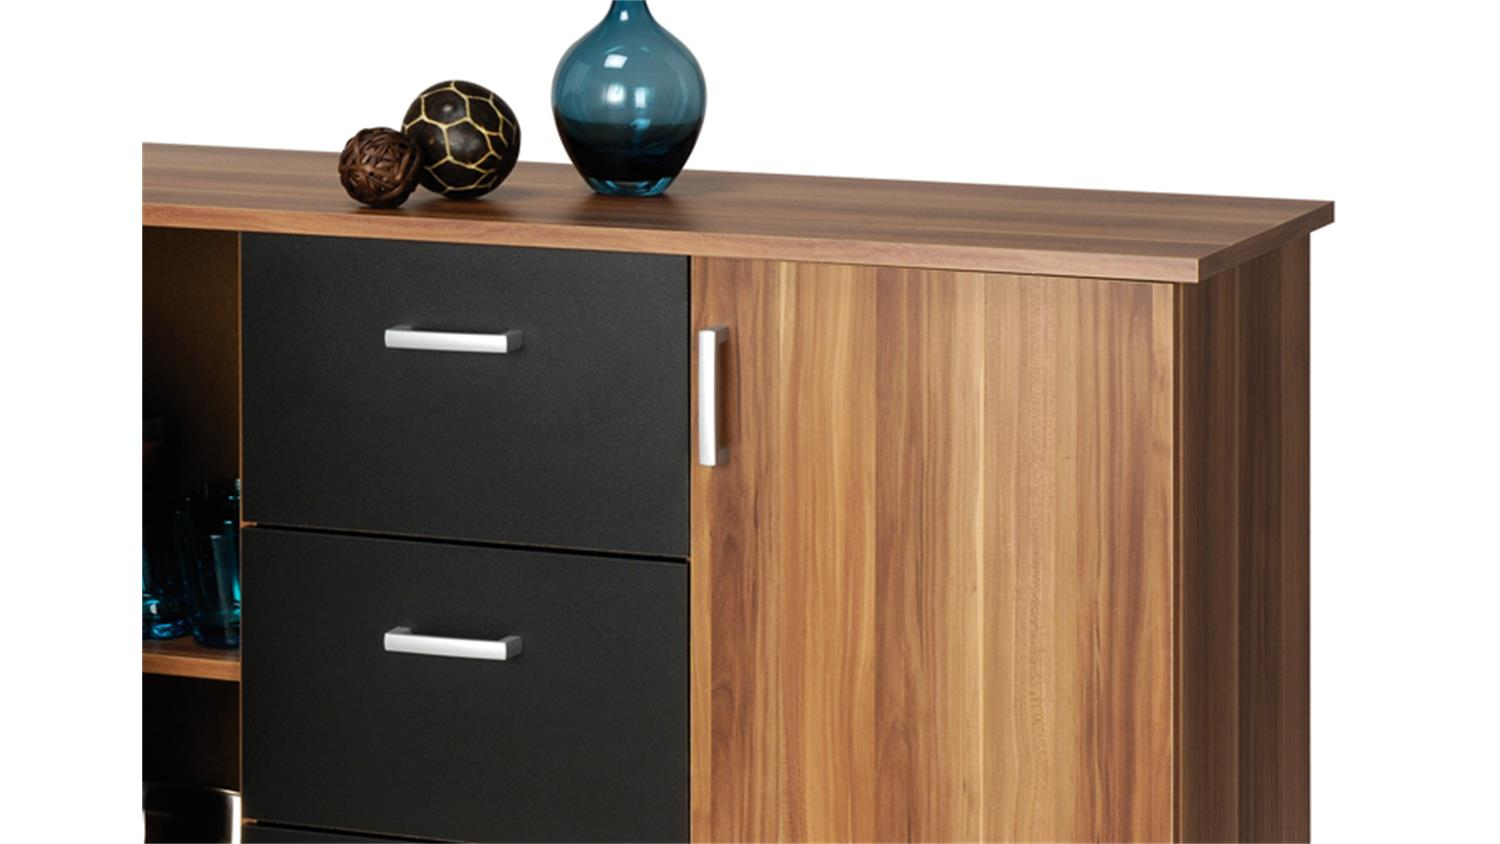 Sideboards Lugano Sideboard Braun Walnuss Interior Kommode Walnuss Luxurises Und Groes Haus Kommode Nussbaum